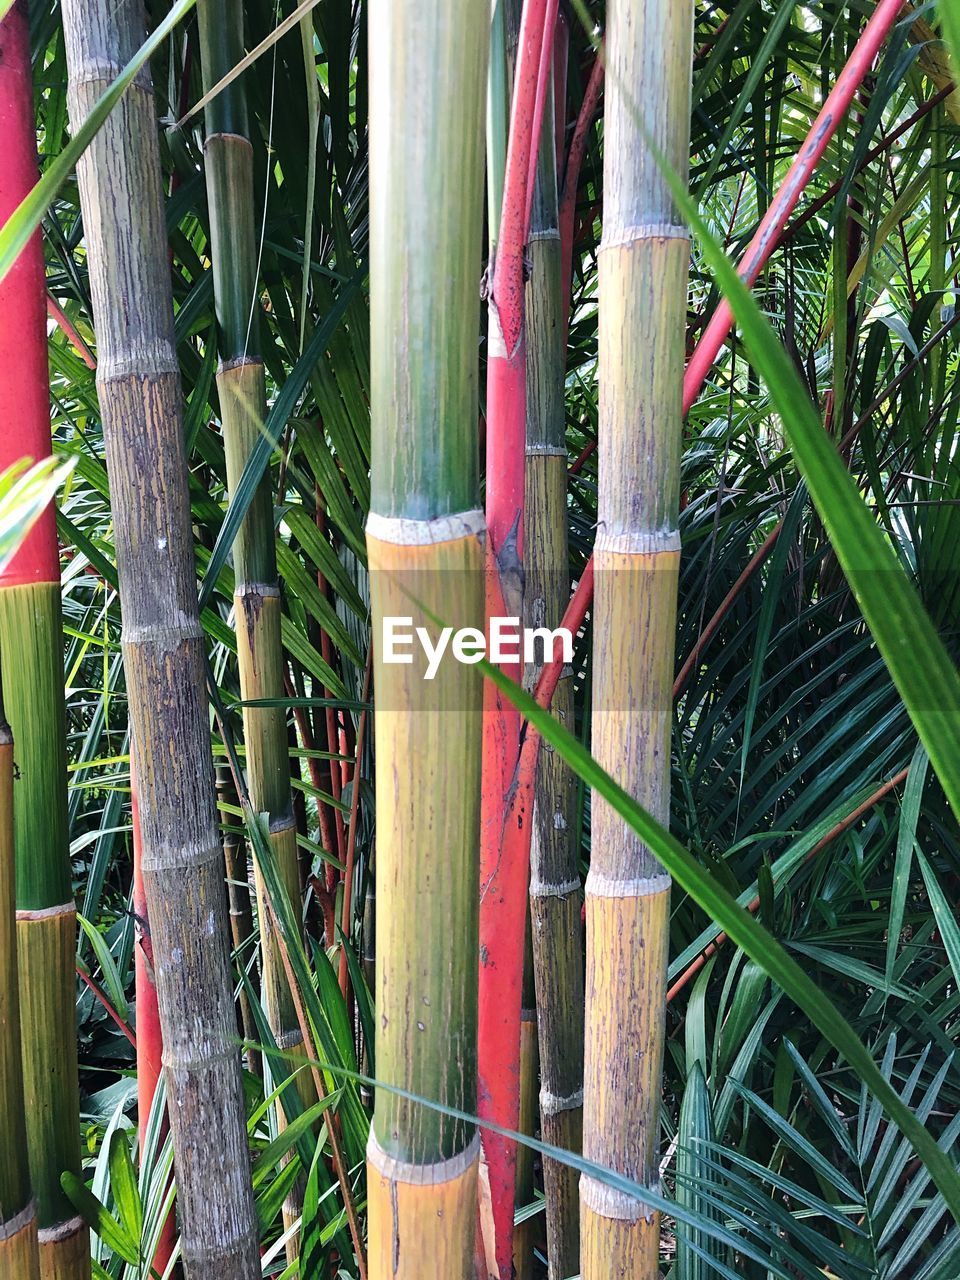 plant, growth, bamboo - plant, green color, no people, bamboo, nature, day, grass, close-up, outdoors, wood - material, plant part, land, field, bamboo grove, leaf, tranquility, beauty in nature, tree, blade of grass